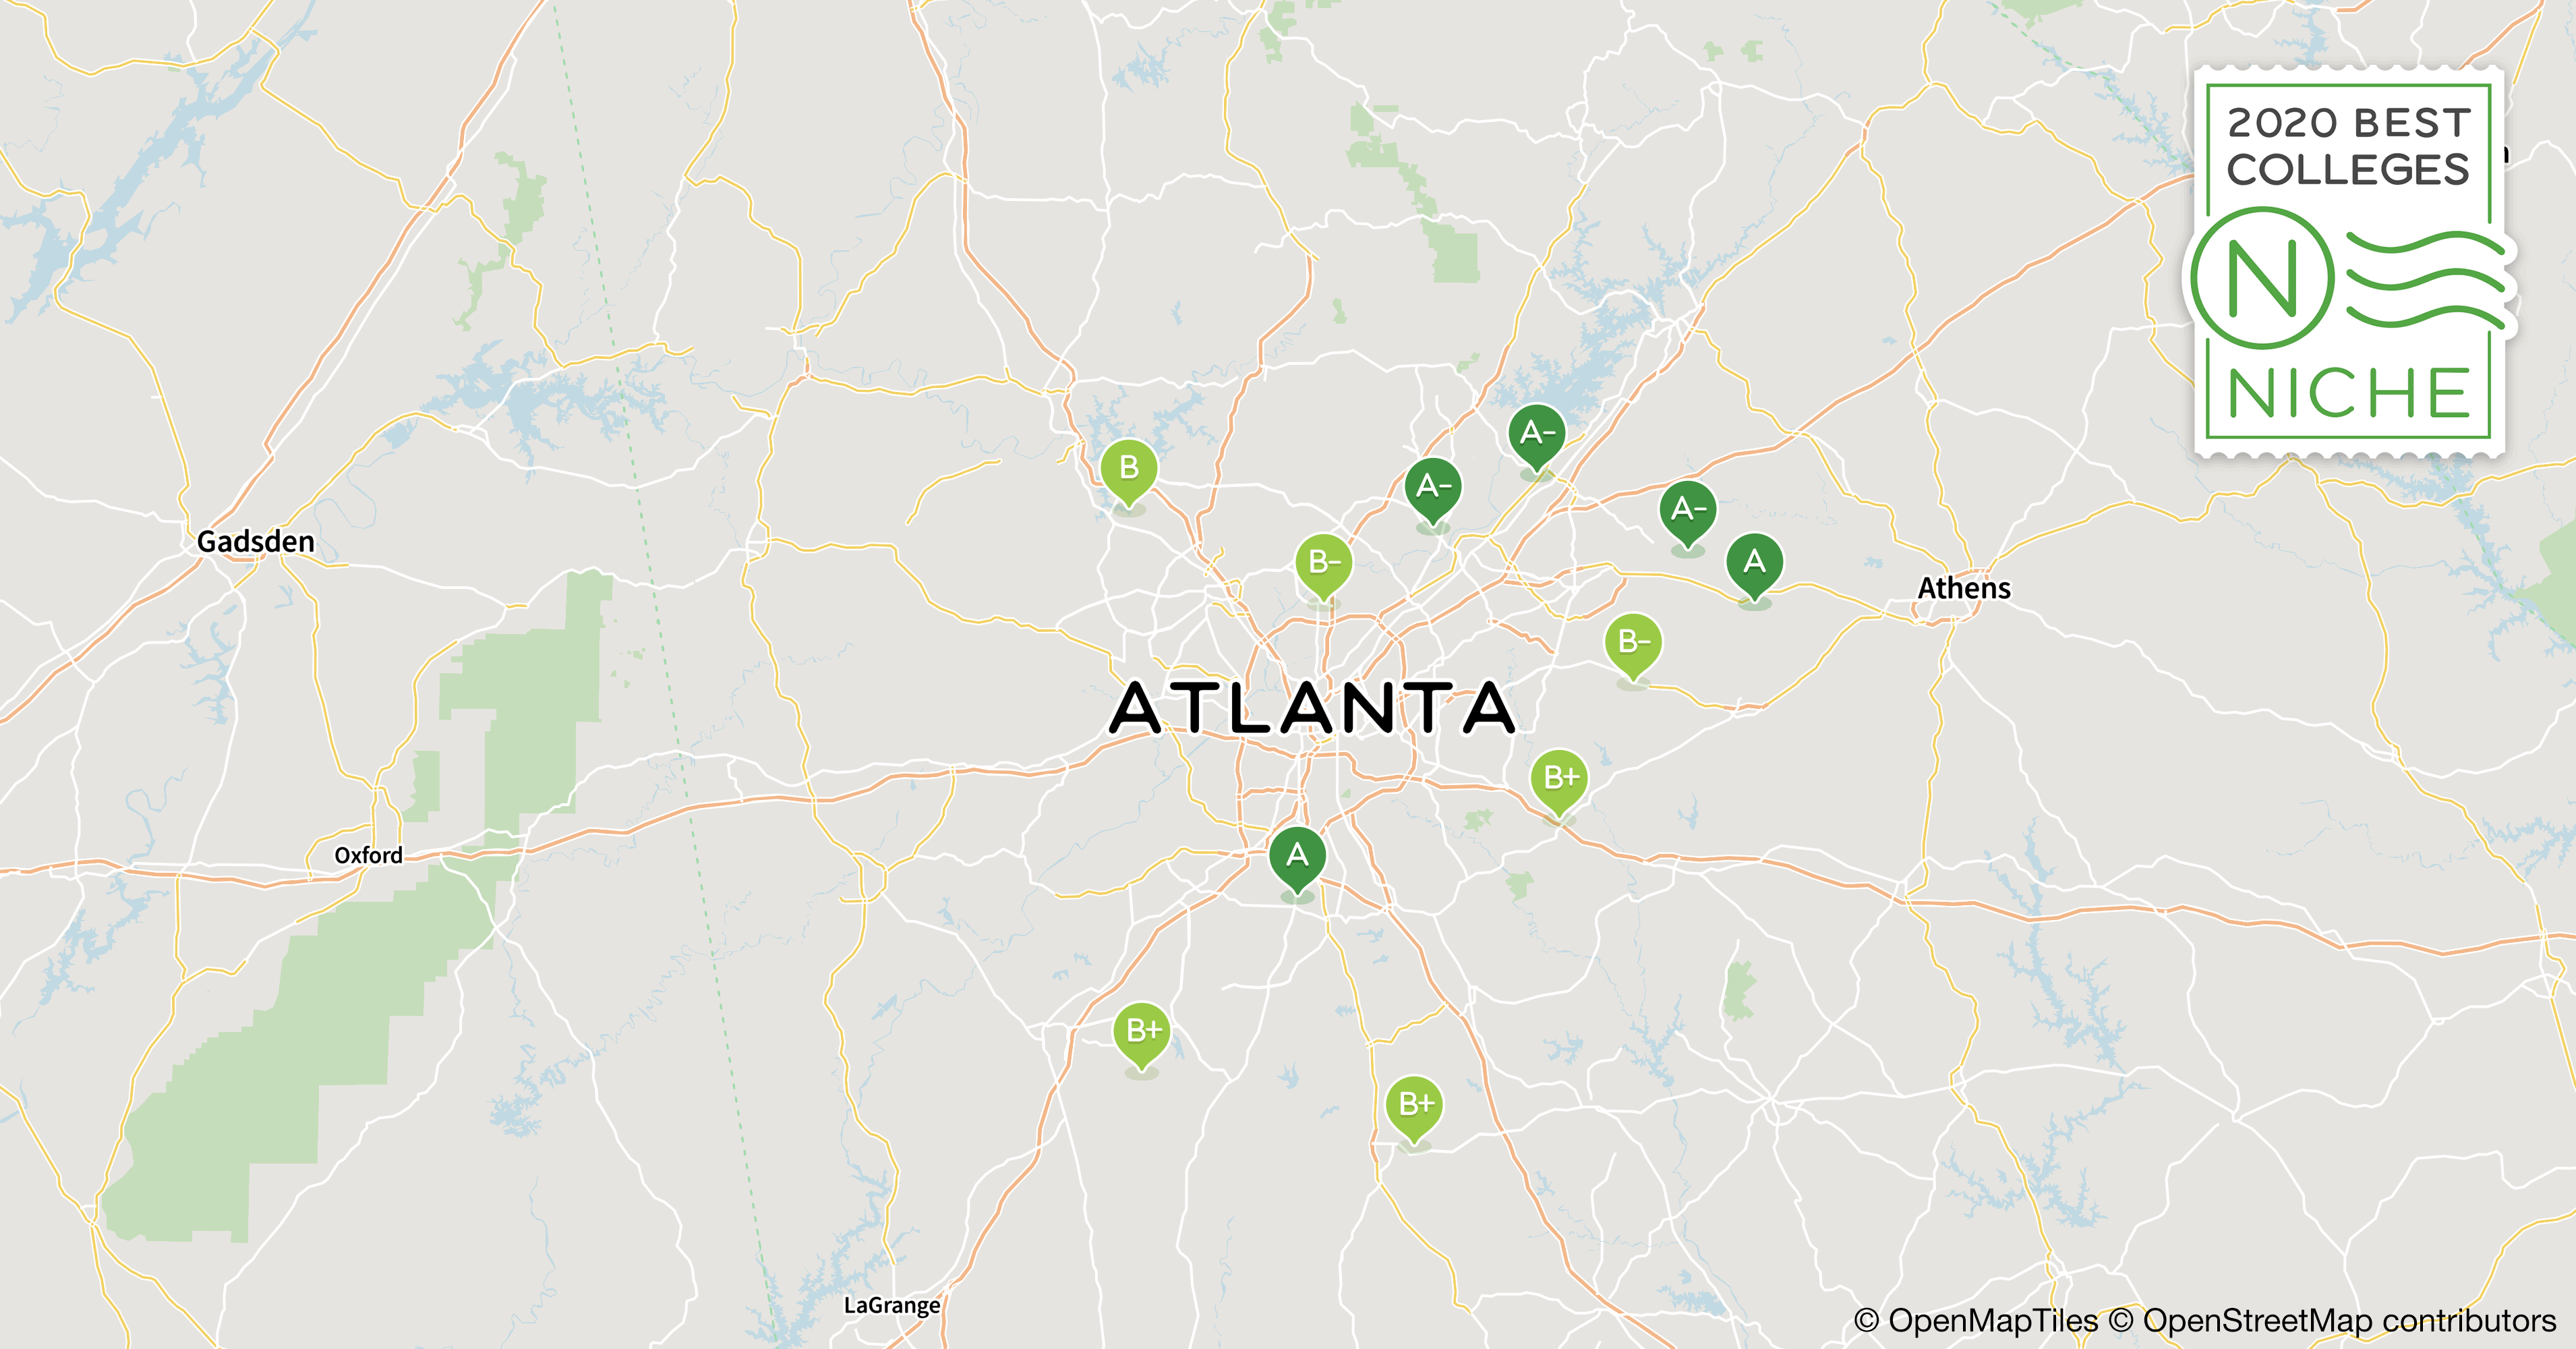 Map Of Georgia Gwinnett College.2020 Best Colleges In Atlanta Area Niche